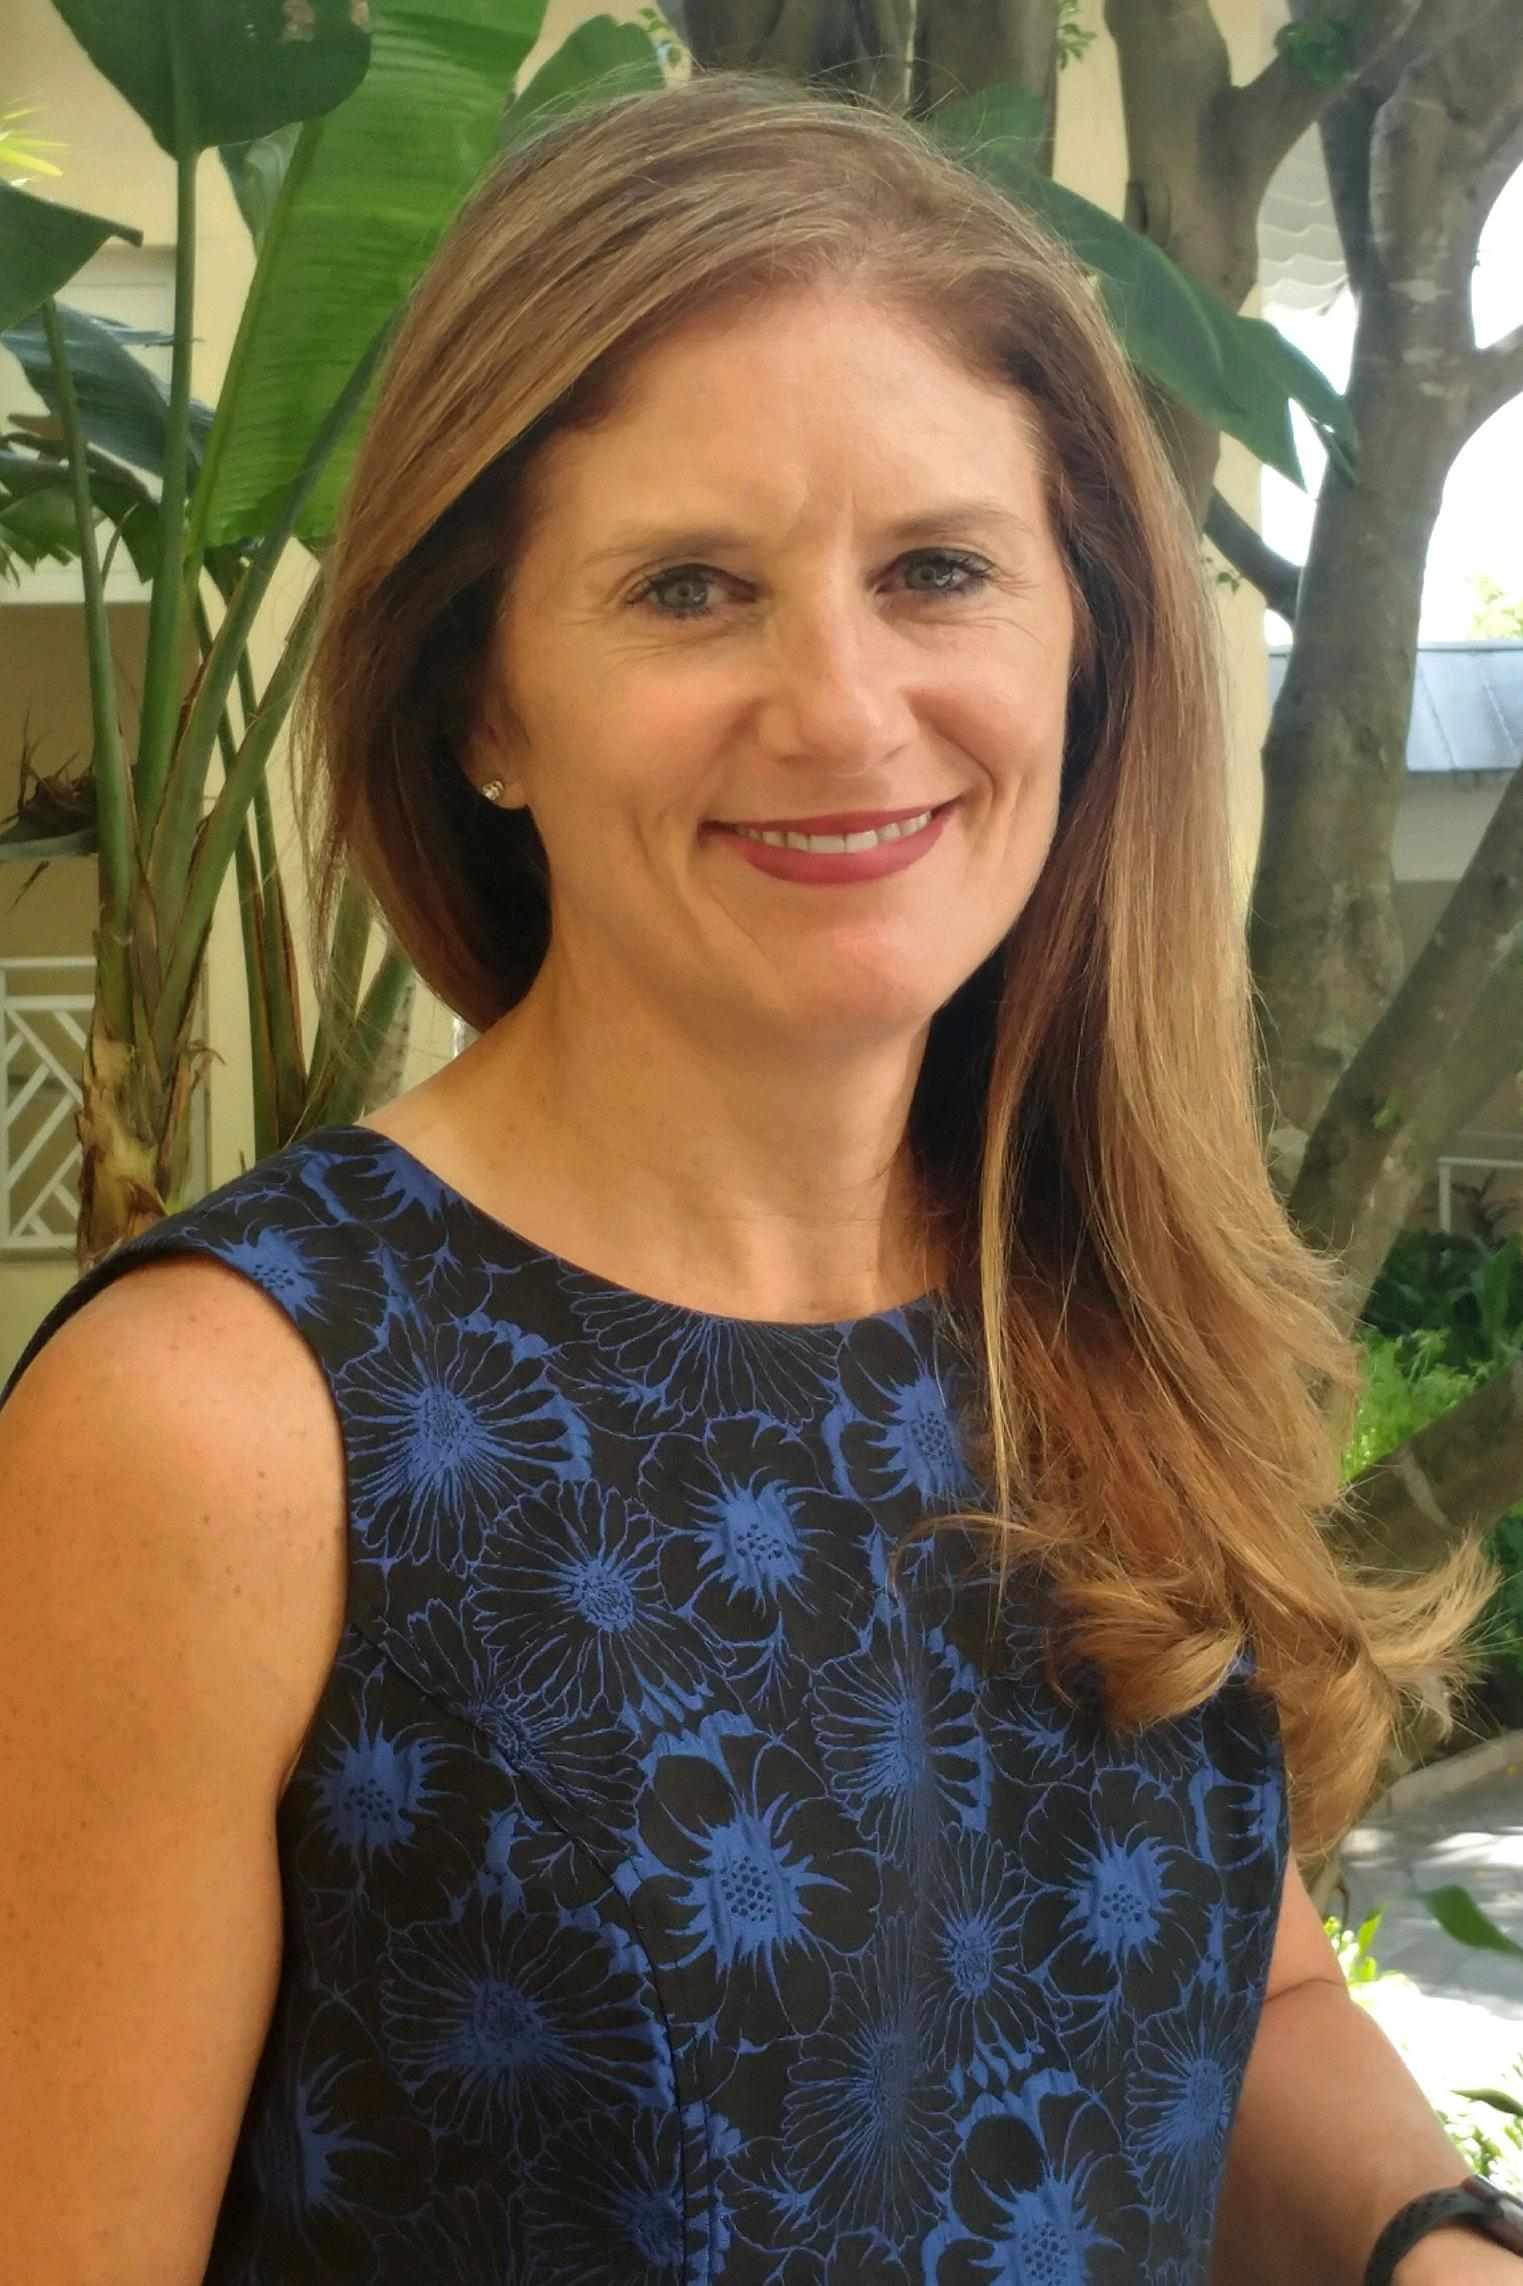 Laramee joins WTS after serving in spa and fitness director roles with Hyatt, Ritz-Carlton, and Canyon Ranch Miami